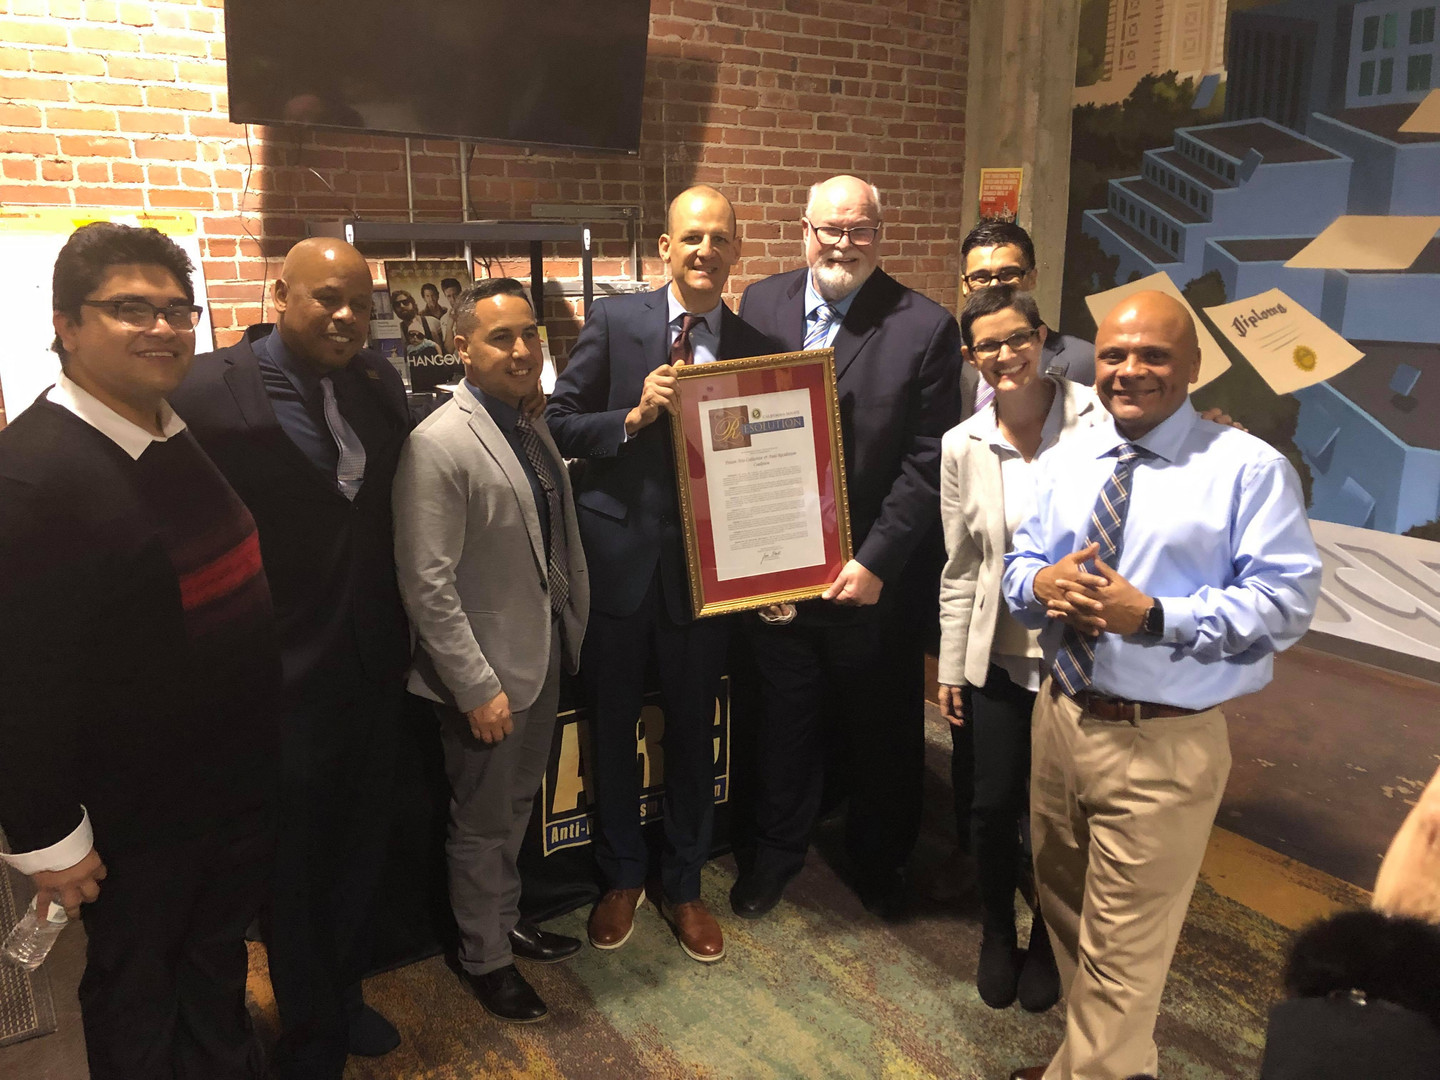 Assemblymember Kevin McCarty and Senator Jim Beall showing their support for the Prison Arts Collective with our PAC members and our partners at the ARC.